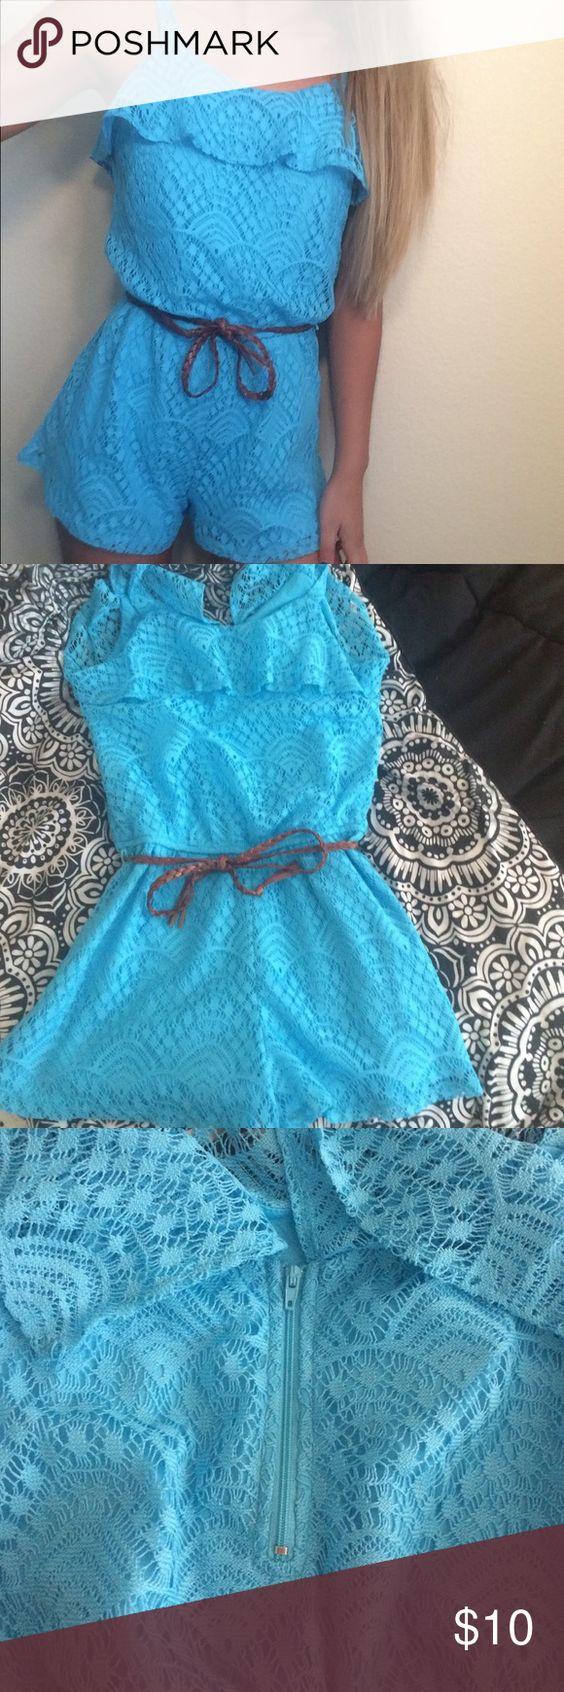 "Bright Blue Romper with Brown Belt Bright blue romper including brown belt. Size 10-12 girls by ""Lots of Love"" excellent condition Lots of Love Dresses Casual"